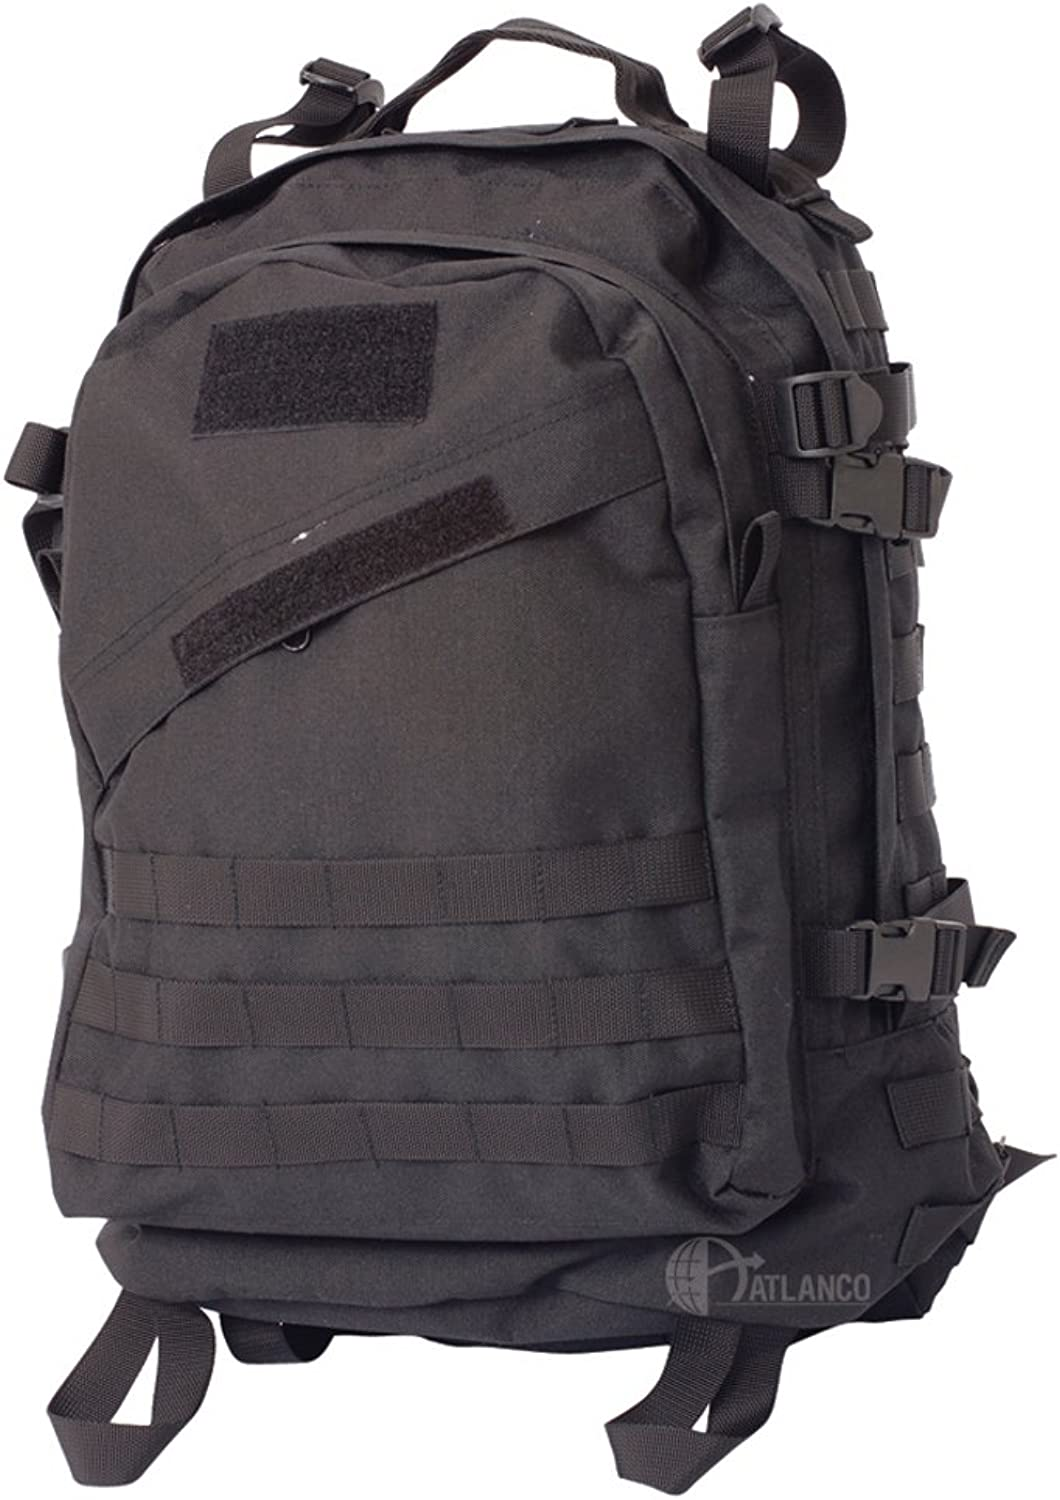 5ive Star Gear GI Spec 3Day Military Backpack